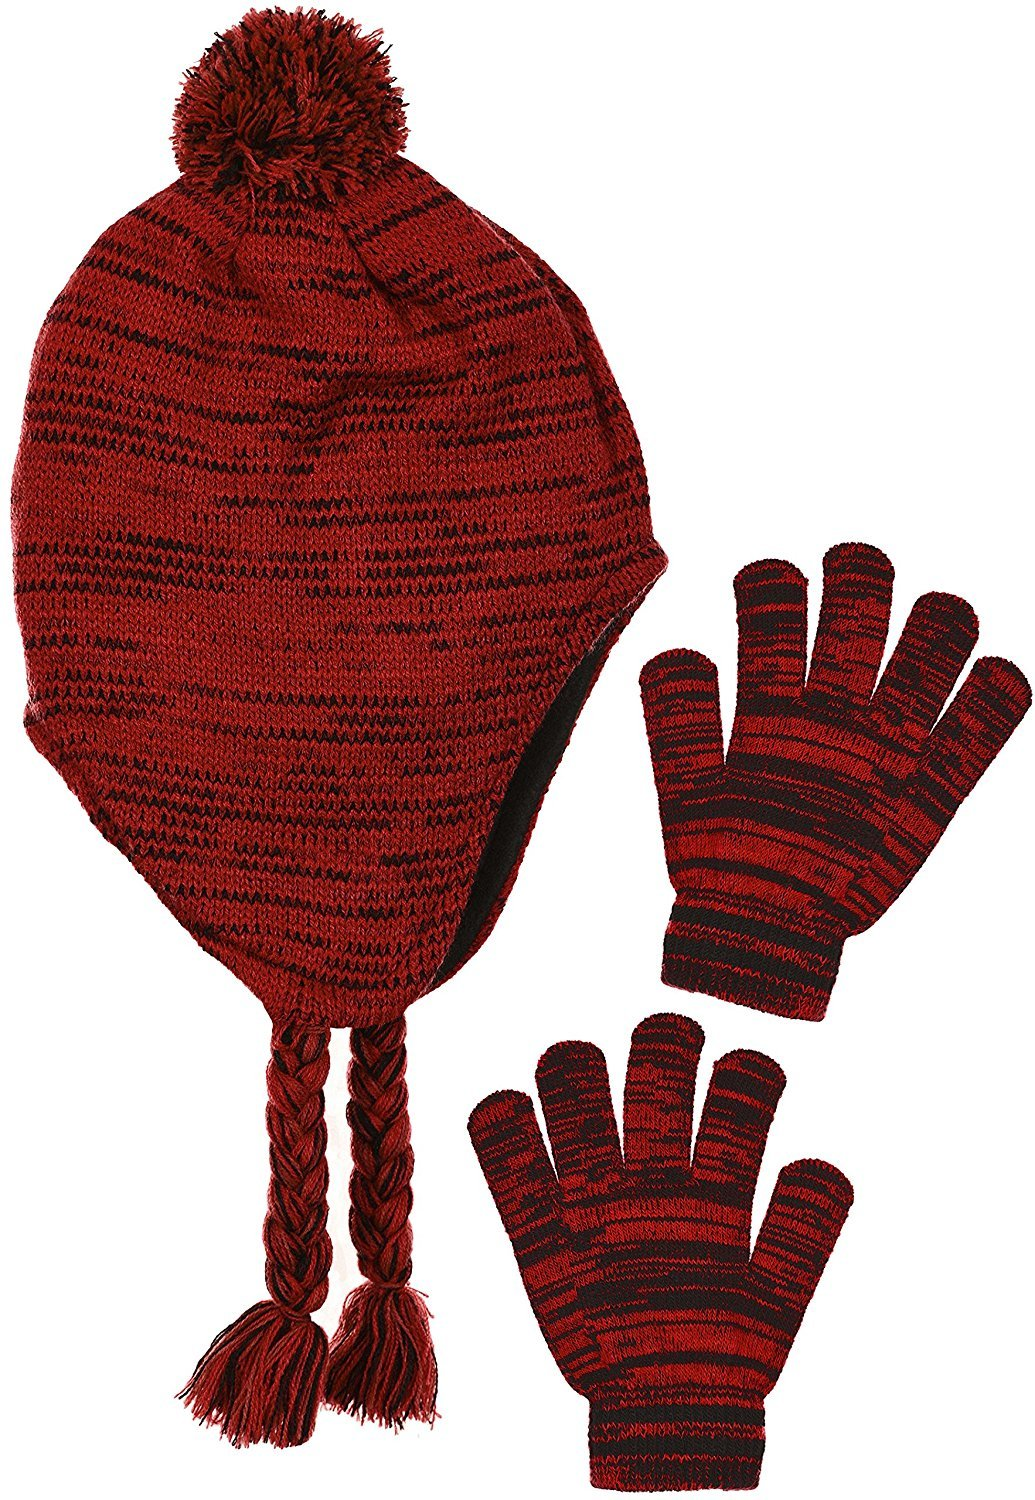 Polar Wear Boy's Traditional Knit Hat with Ear Flaps & Gloves Set in 3 Colors B7C1720